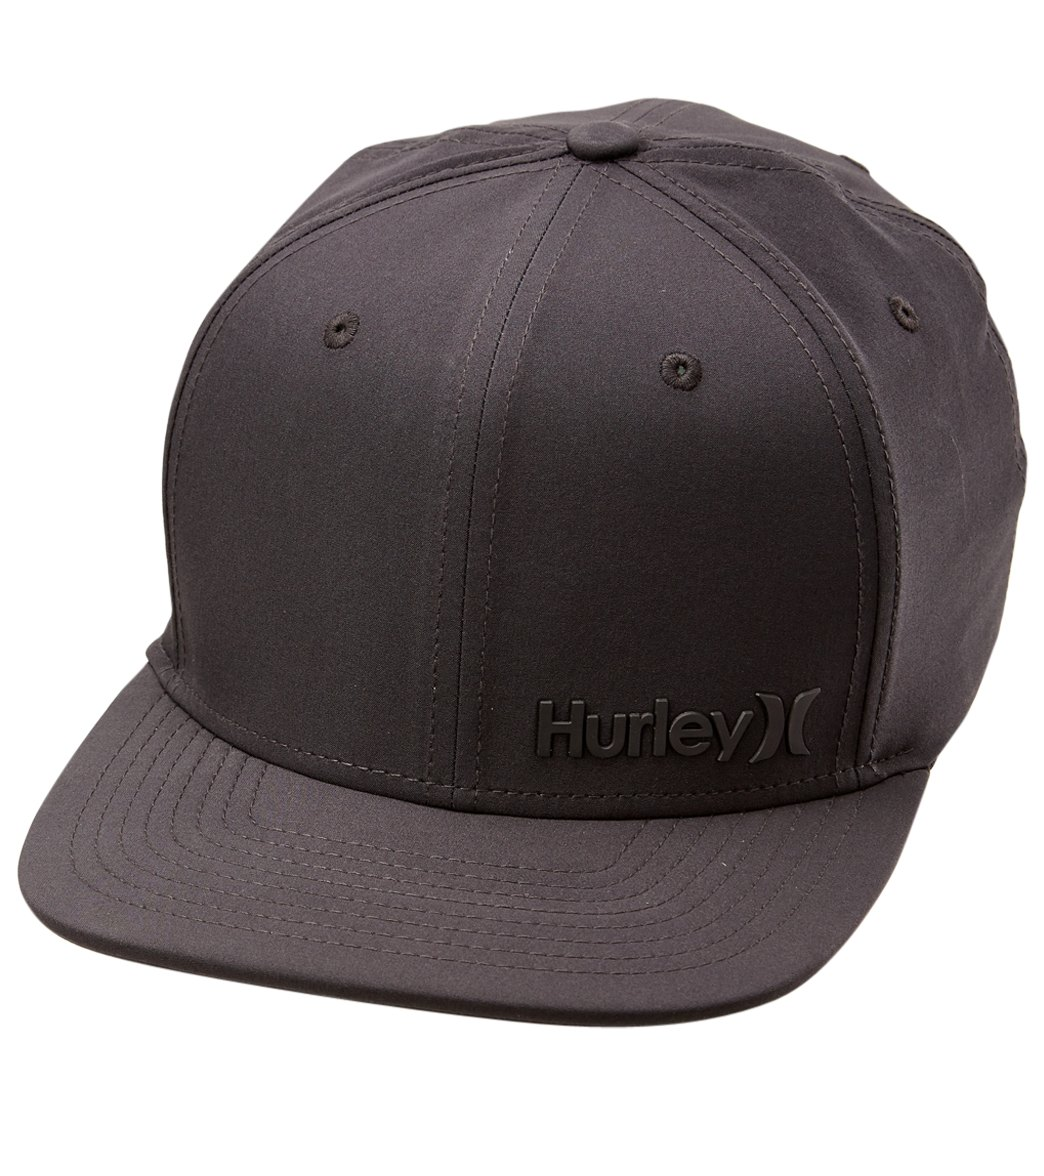 349998382c9 ... new zealand hurley mens phantom corp hat 7c2a8 4b7d4